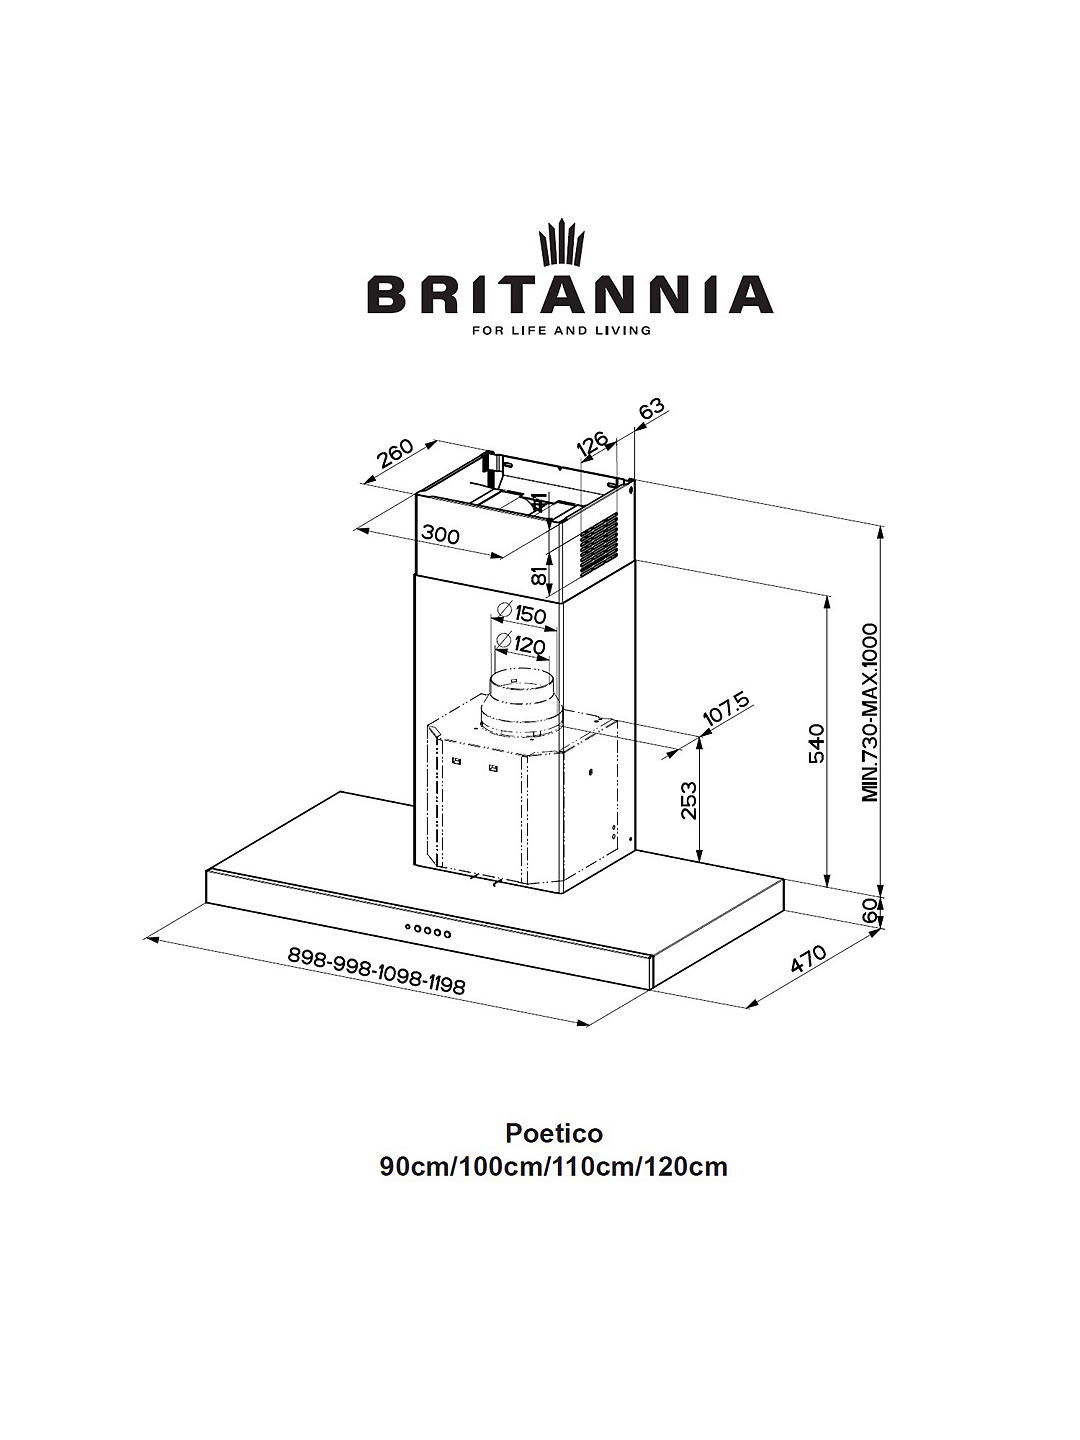 Buy Britannia Poetico 100cm Chimney Cooker Hood, A+ Energy Rating, Stainless Steel Online at johnlewis.com